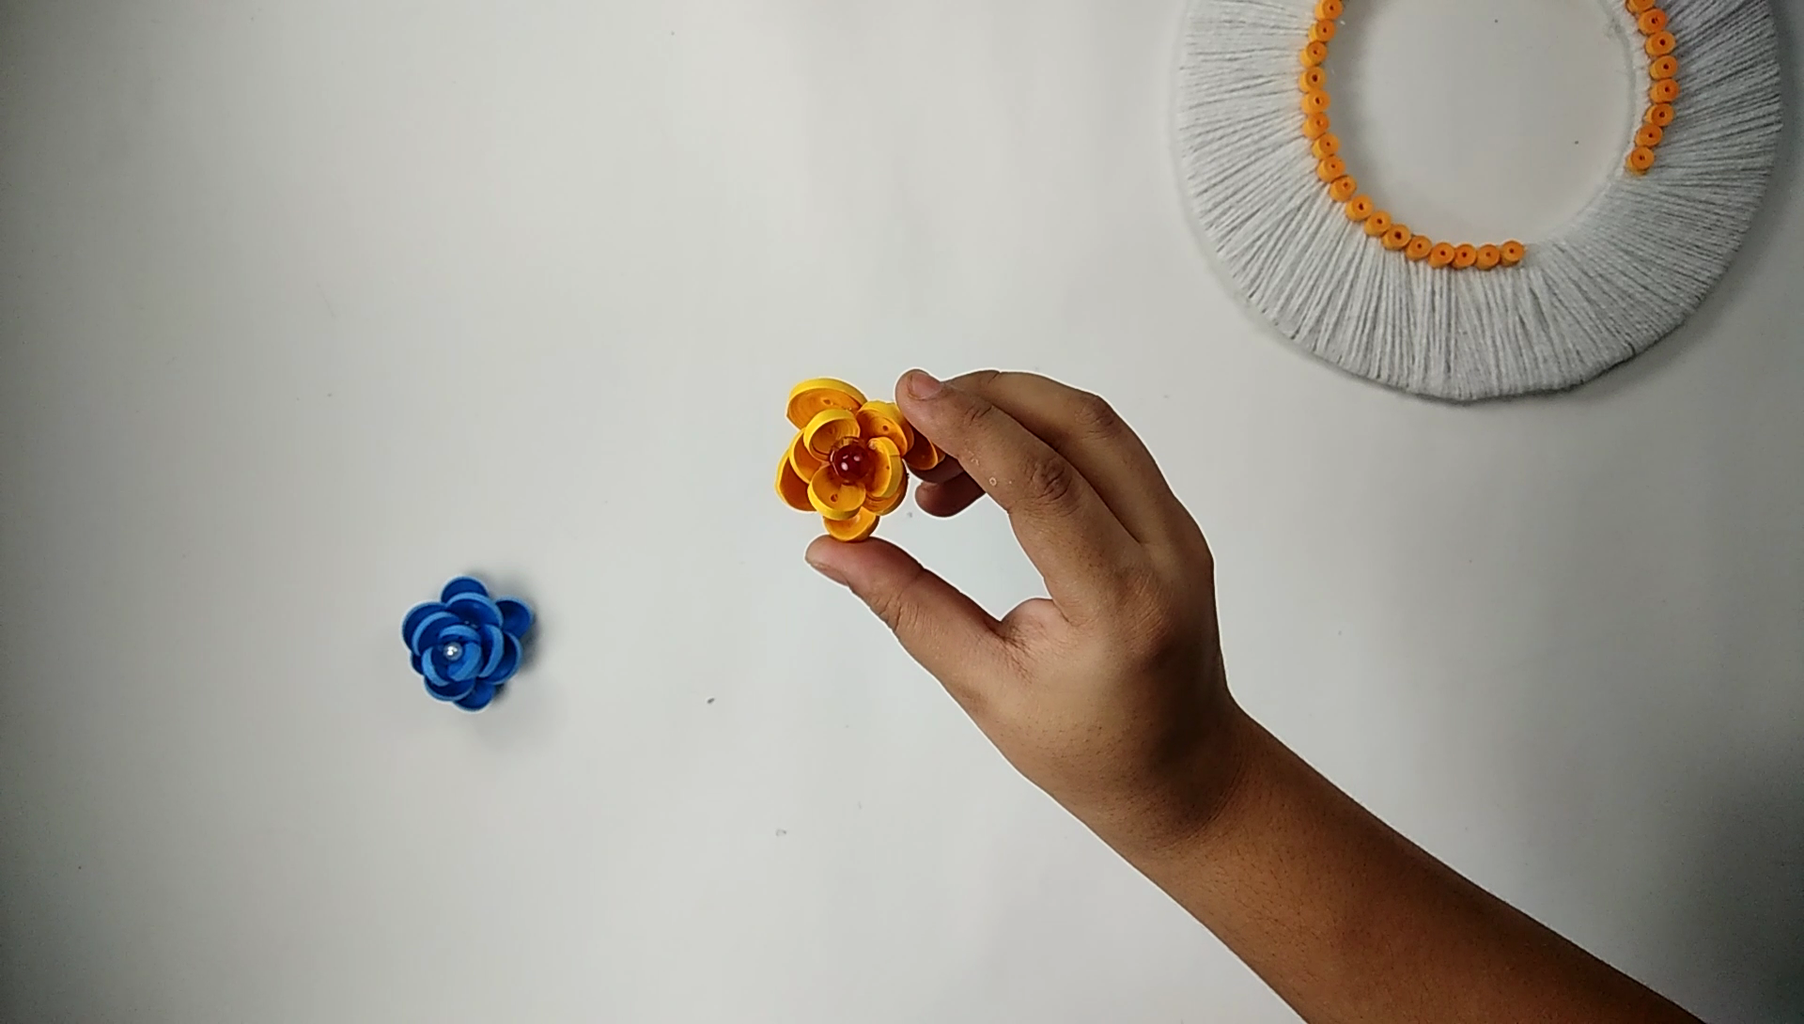 Making the Quilling Flower